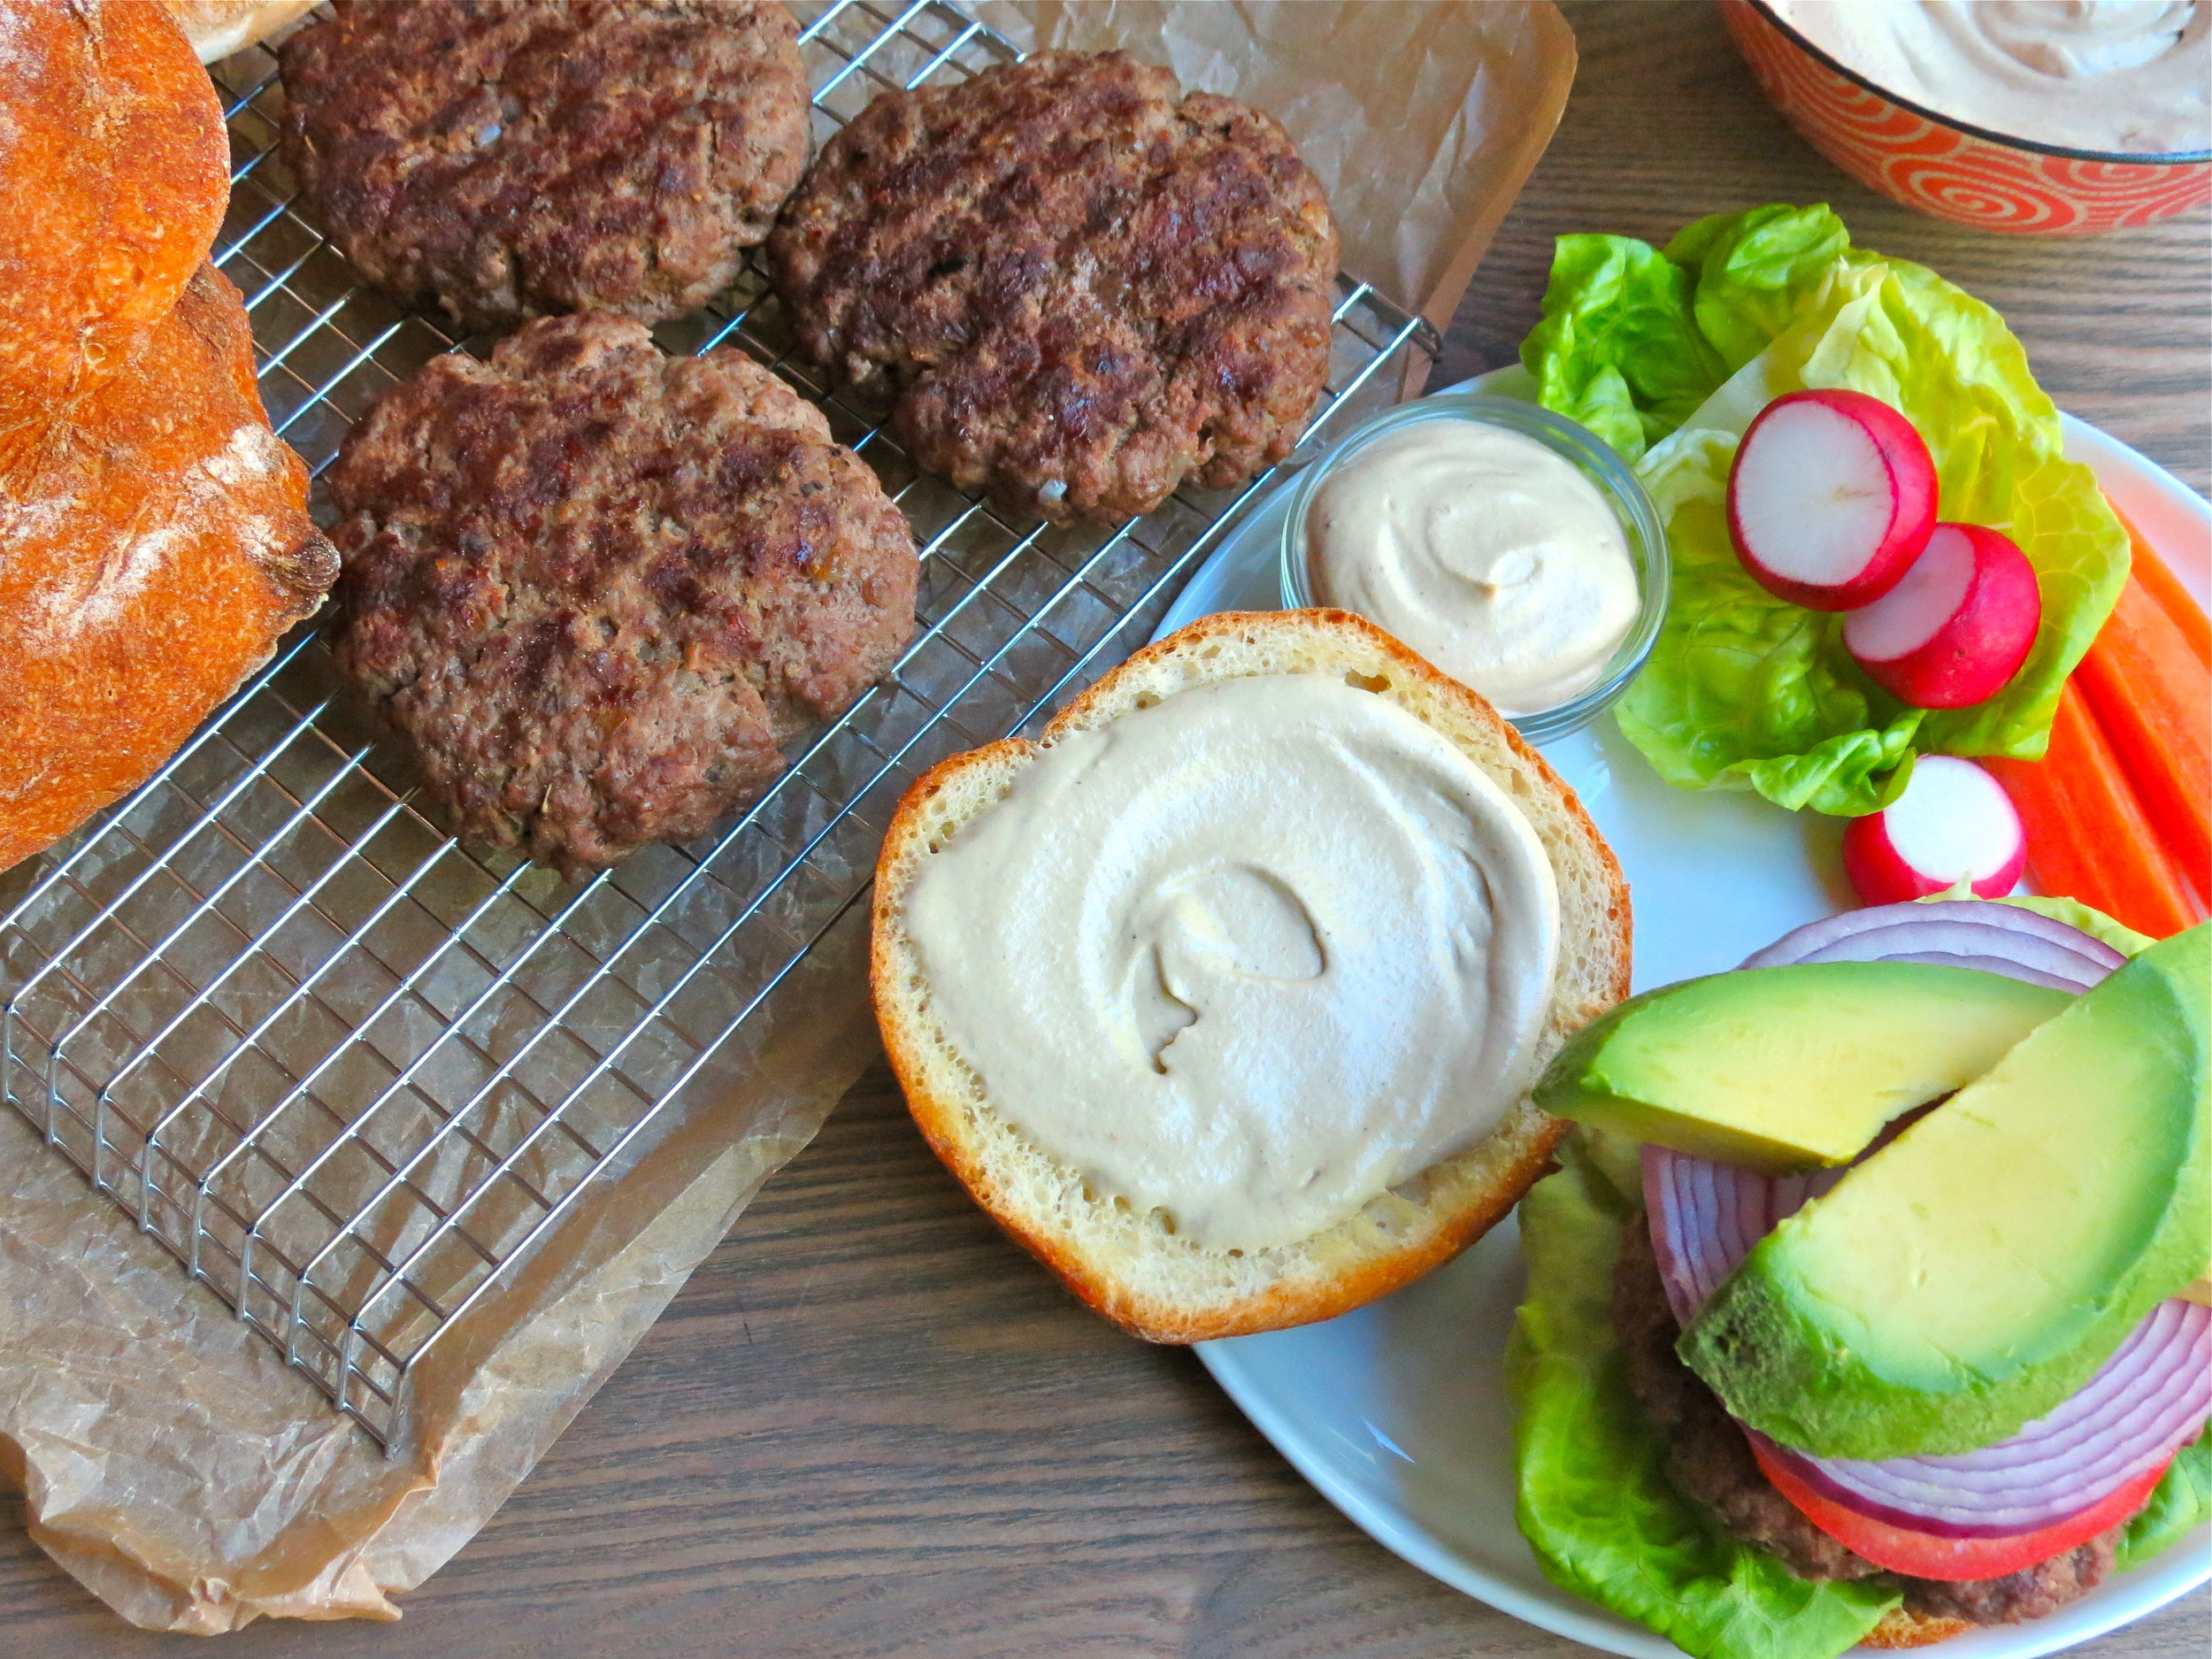 Spread some Creamy Chipotle Cashew Cream on your burger for a tasty finishing touch!